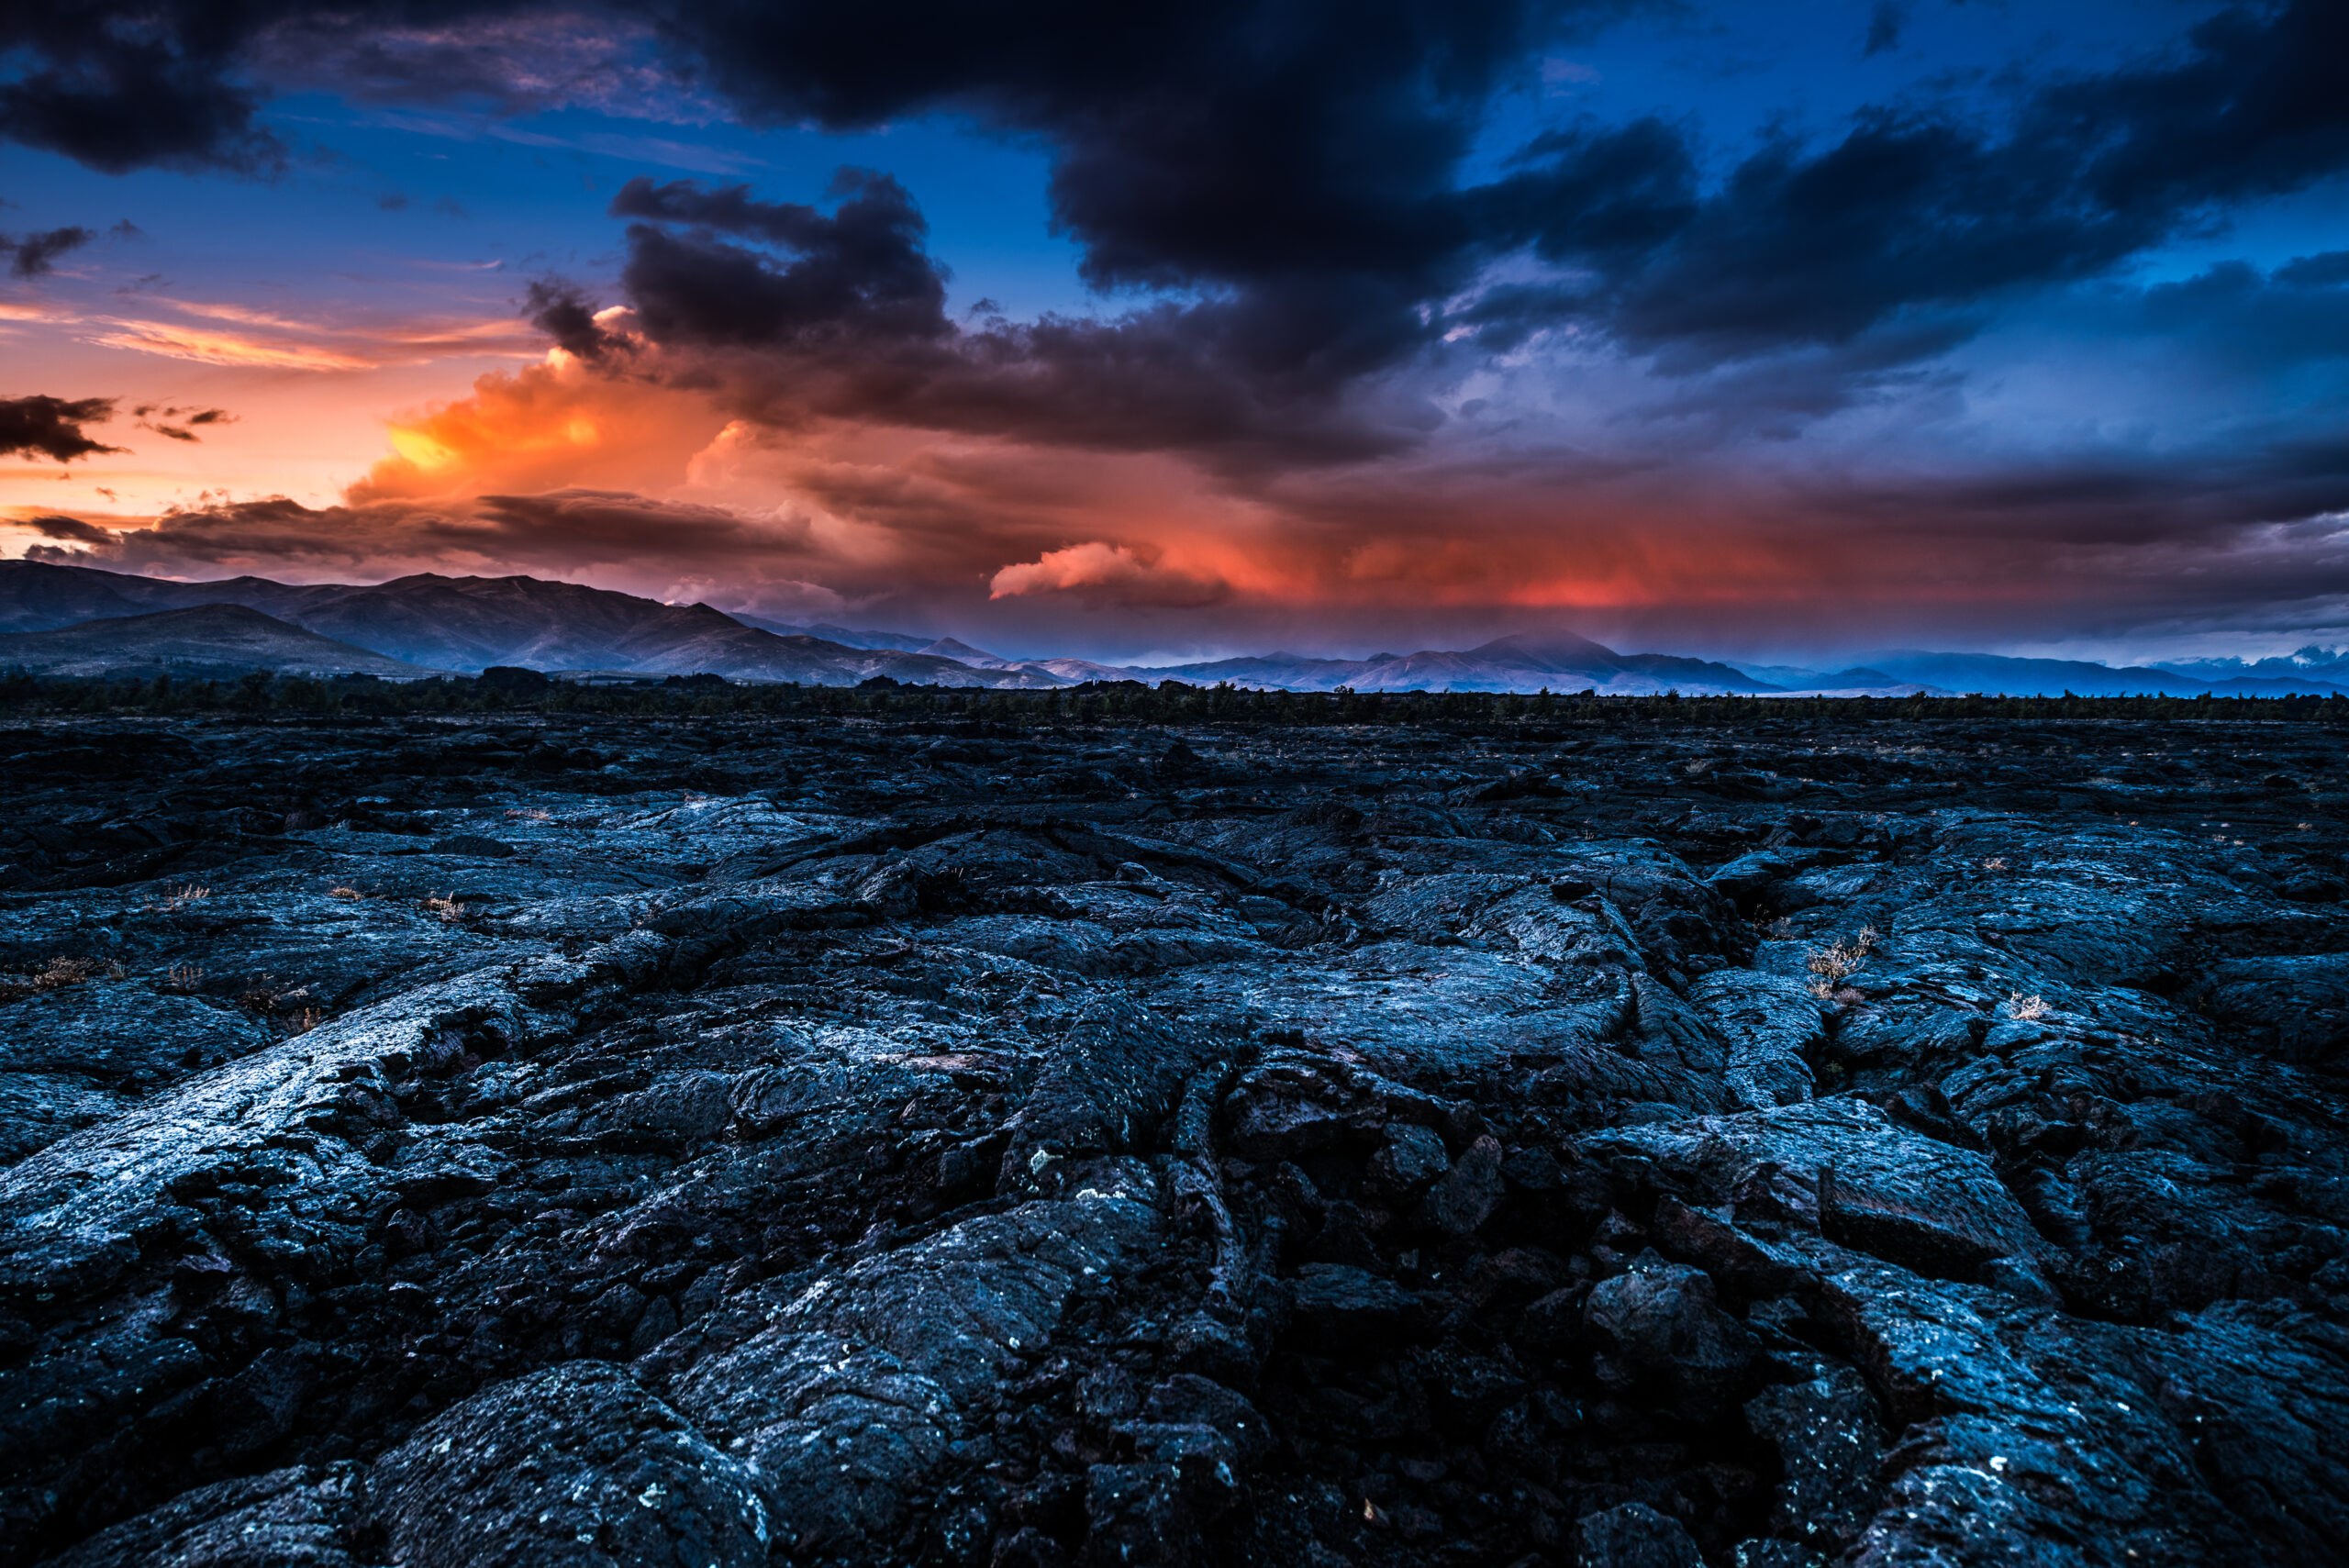 Craters of the Moon in Idaho, as the sunsets, with clouds in the sky.